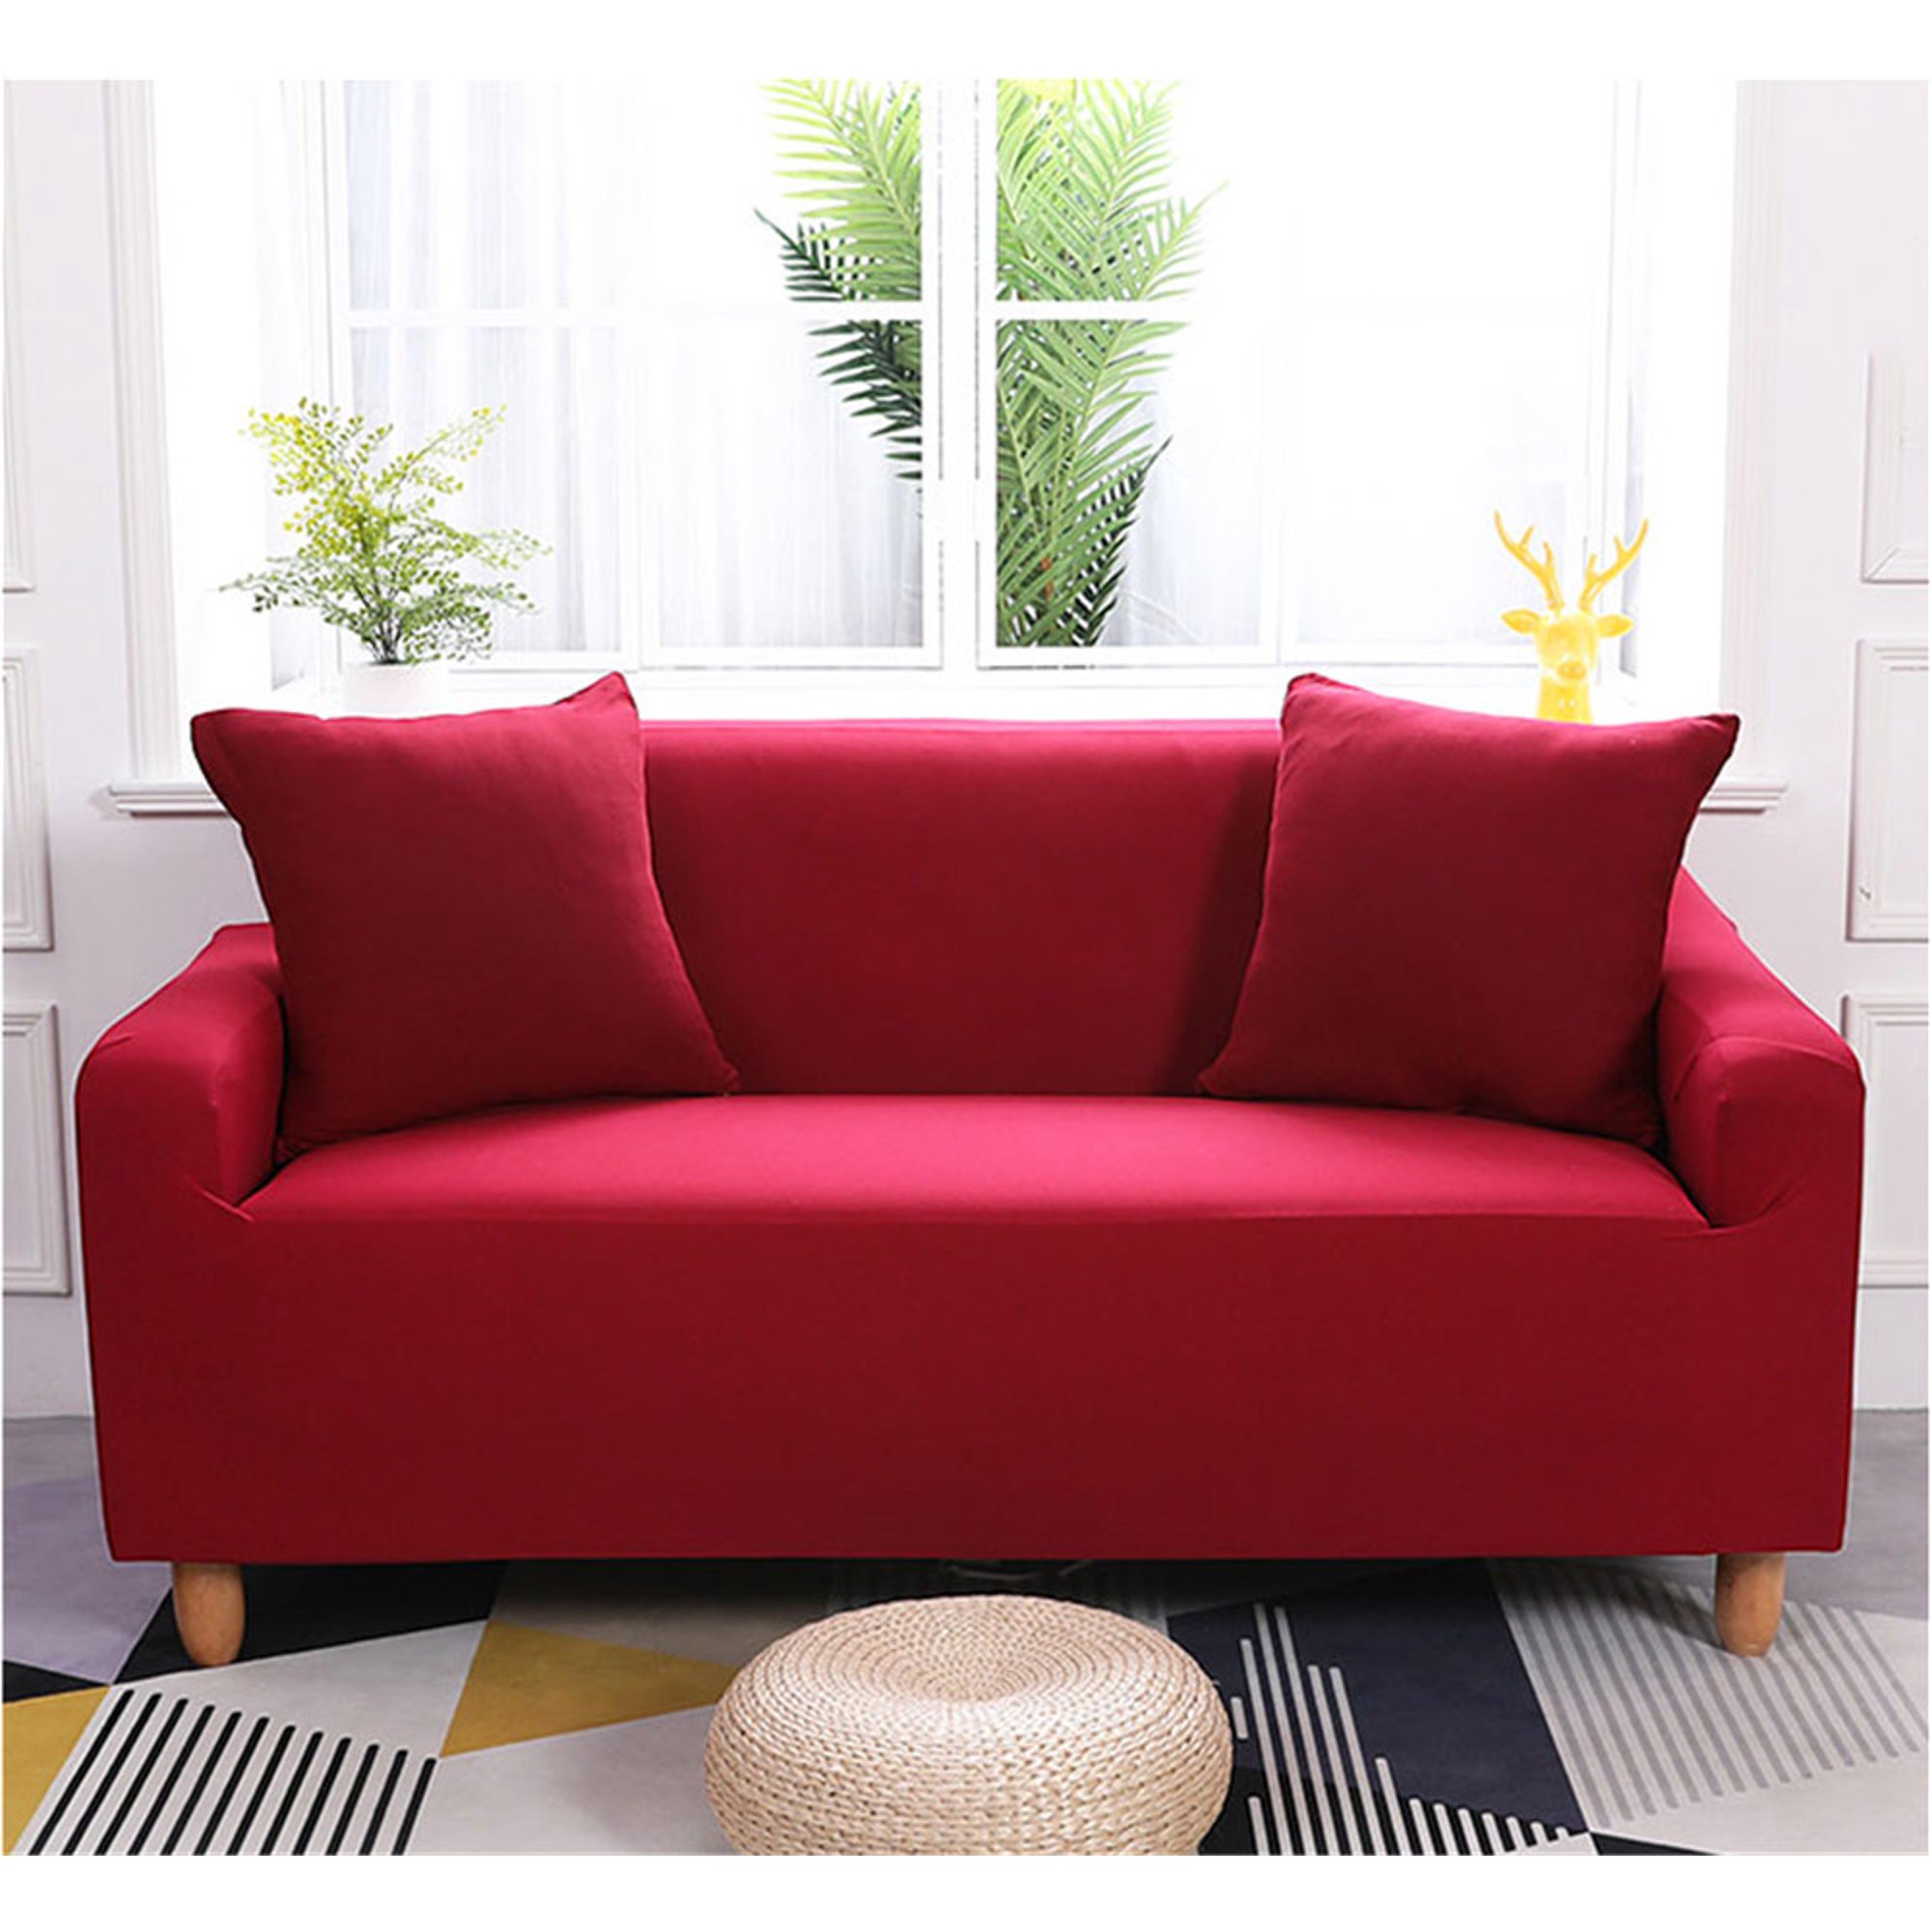 Fabric Slipcover,Stretch 1/2/3/4 Seats Sofa Cover Slipcover ,1-Piece Fabric  Sofa Protector(2Seat=57\